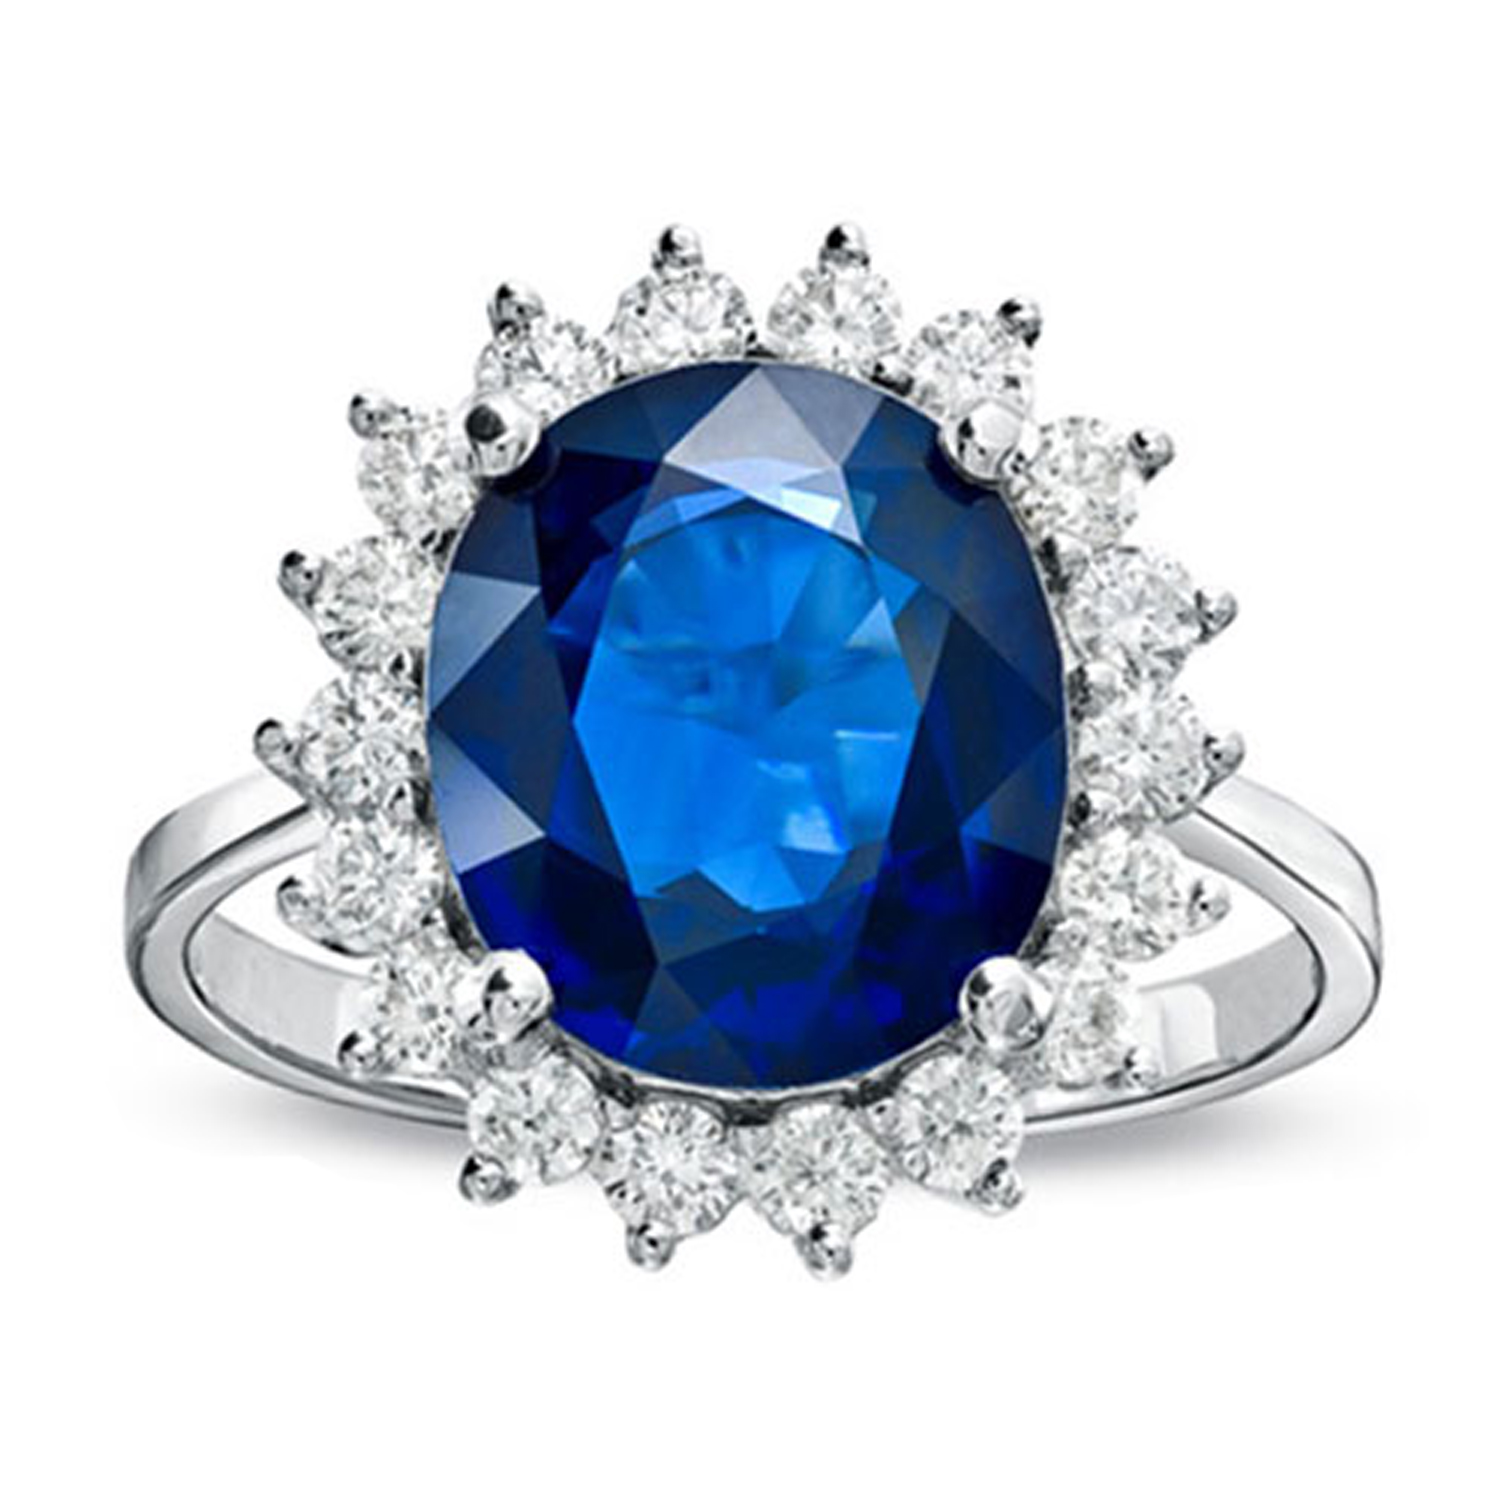 View 6.28ct tw 12X10mm 5.53 Carat Oval Sapphire and Diamond Ring in 14k Gold Royal Collection